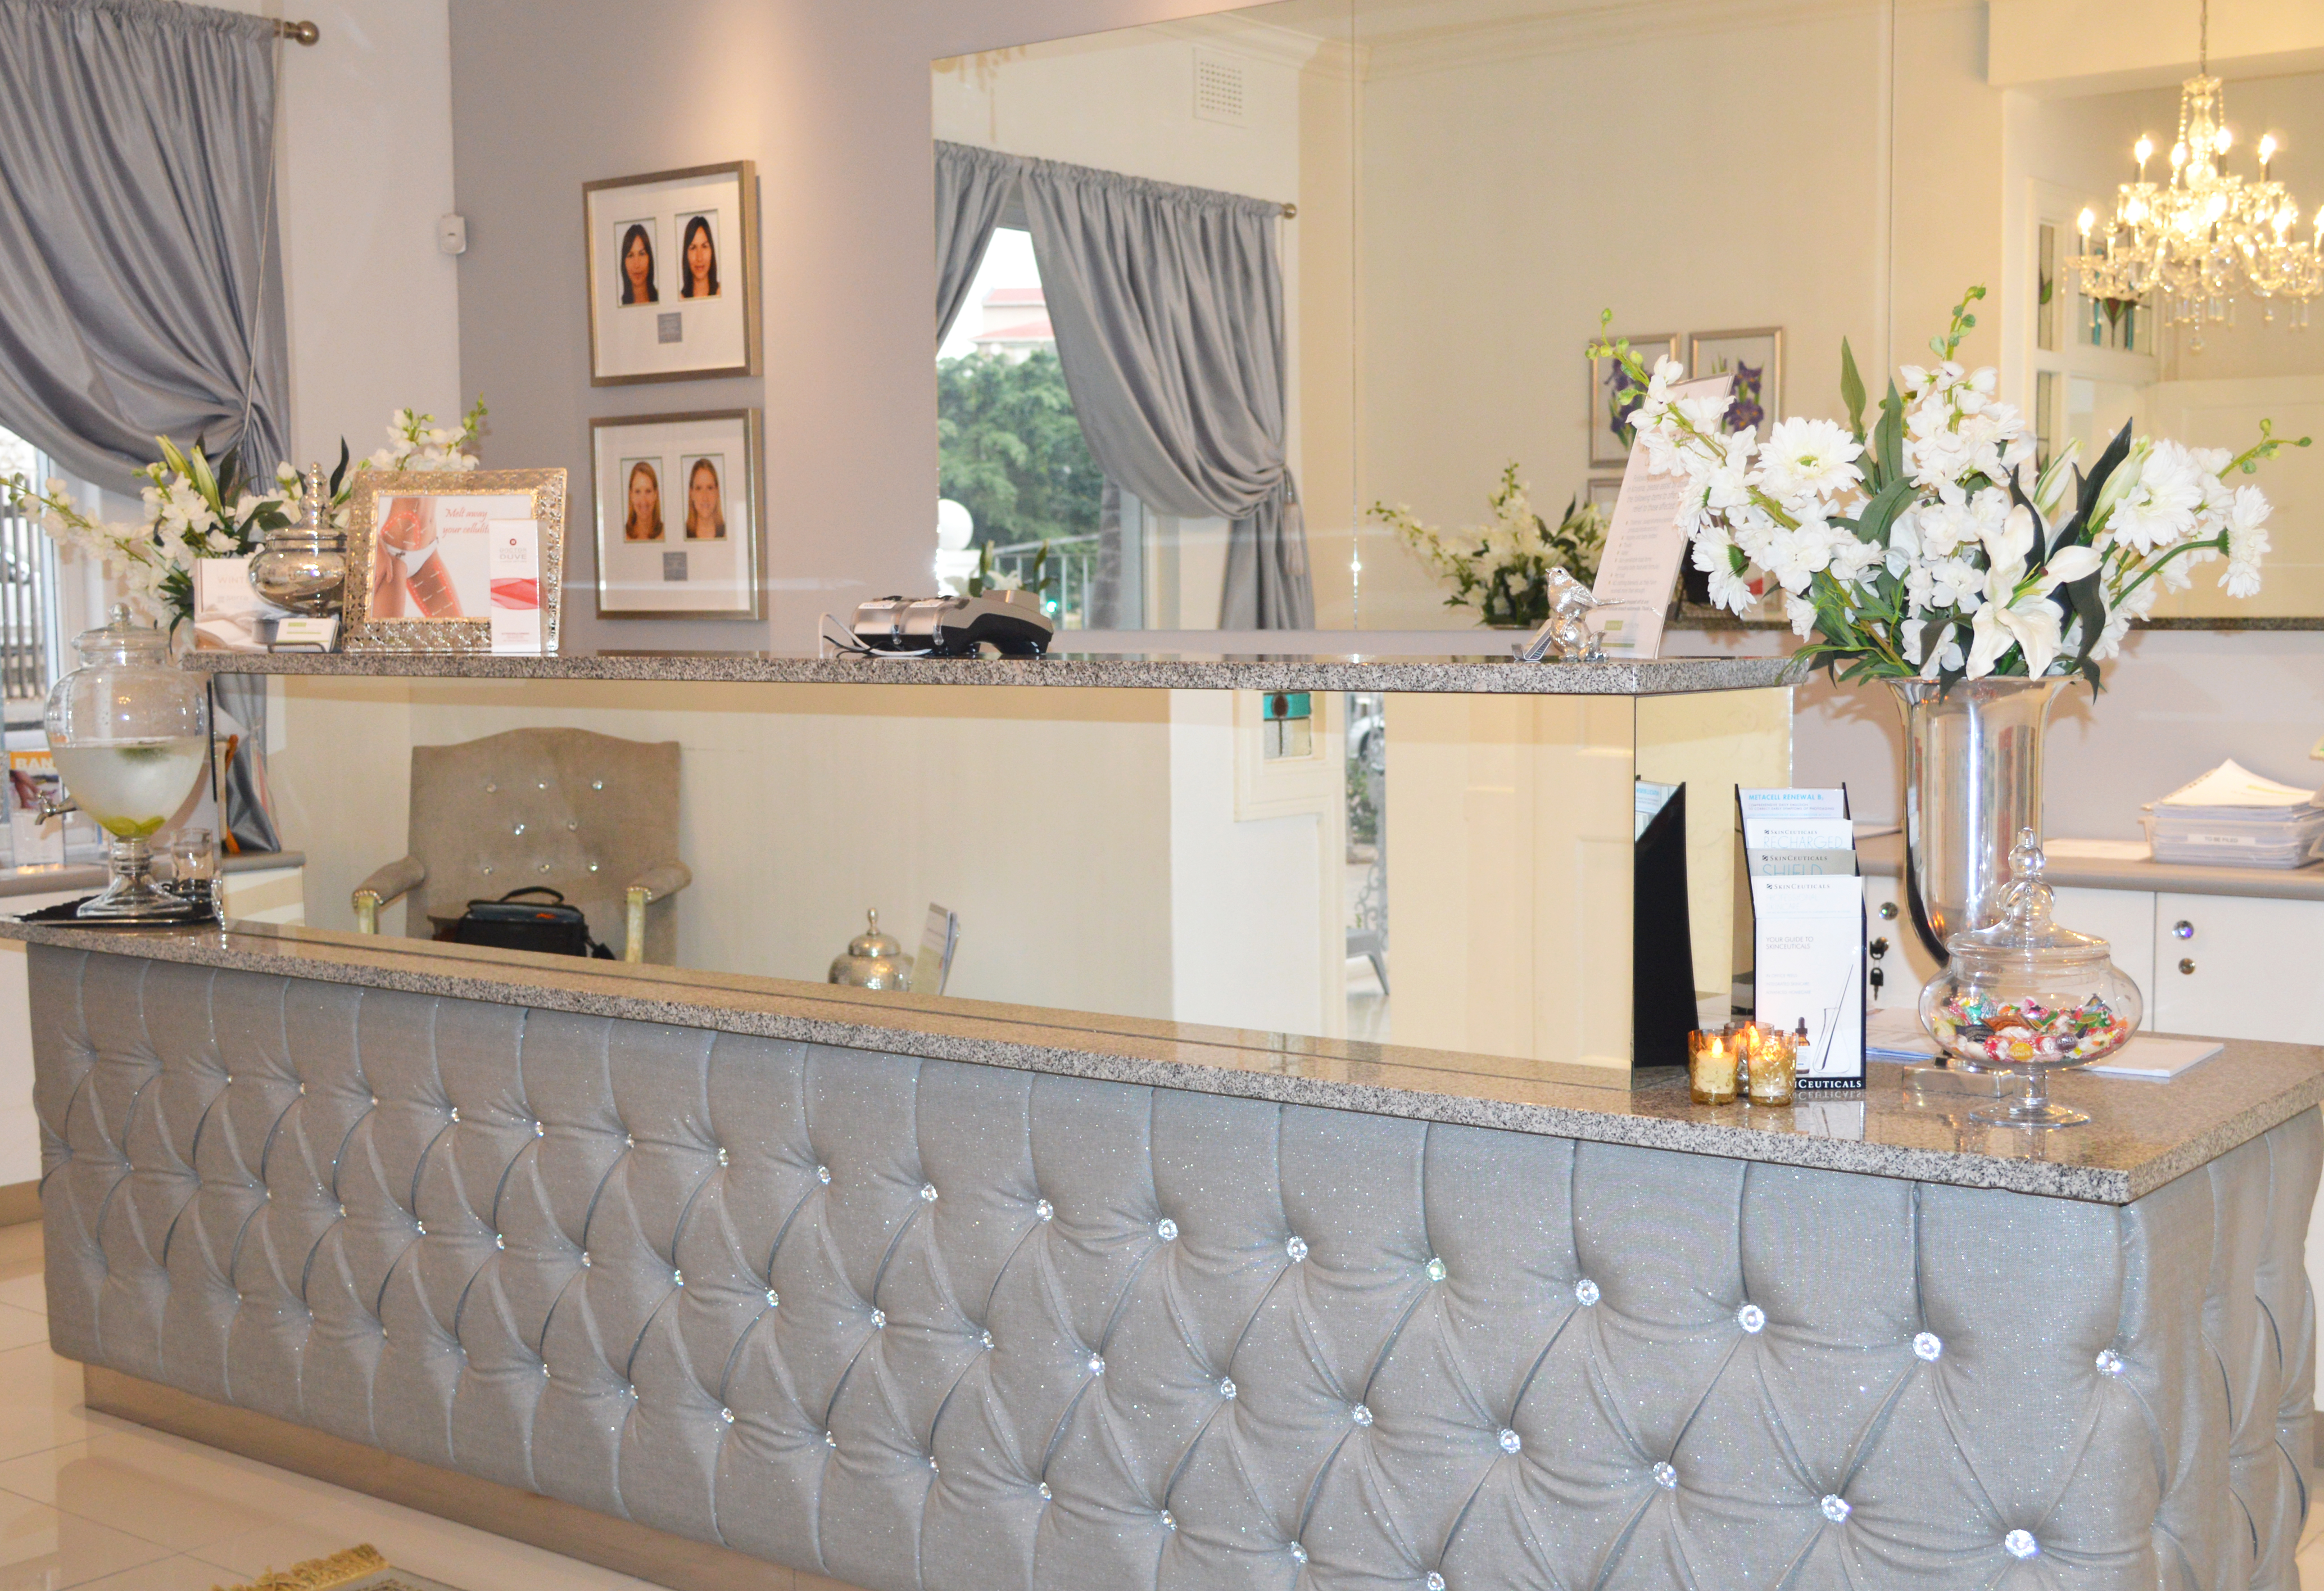 The reception area at Skin Renewal is warm and inviting, setting the tone for your treatment. Picture: Meneesha Govender